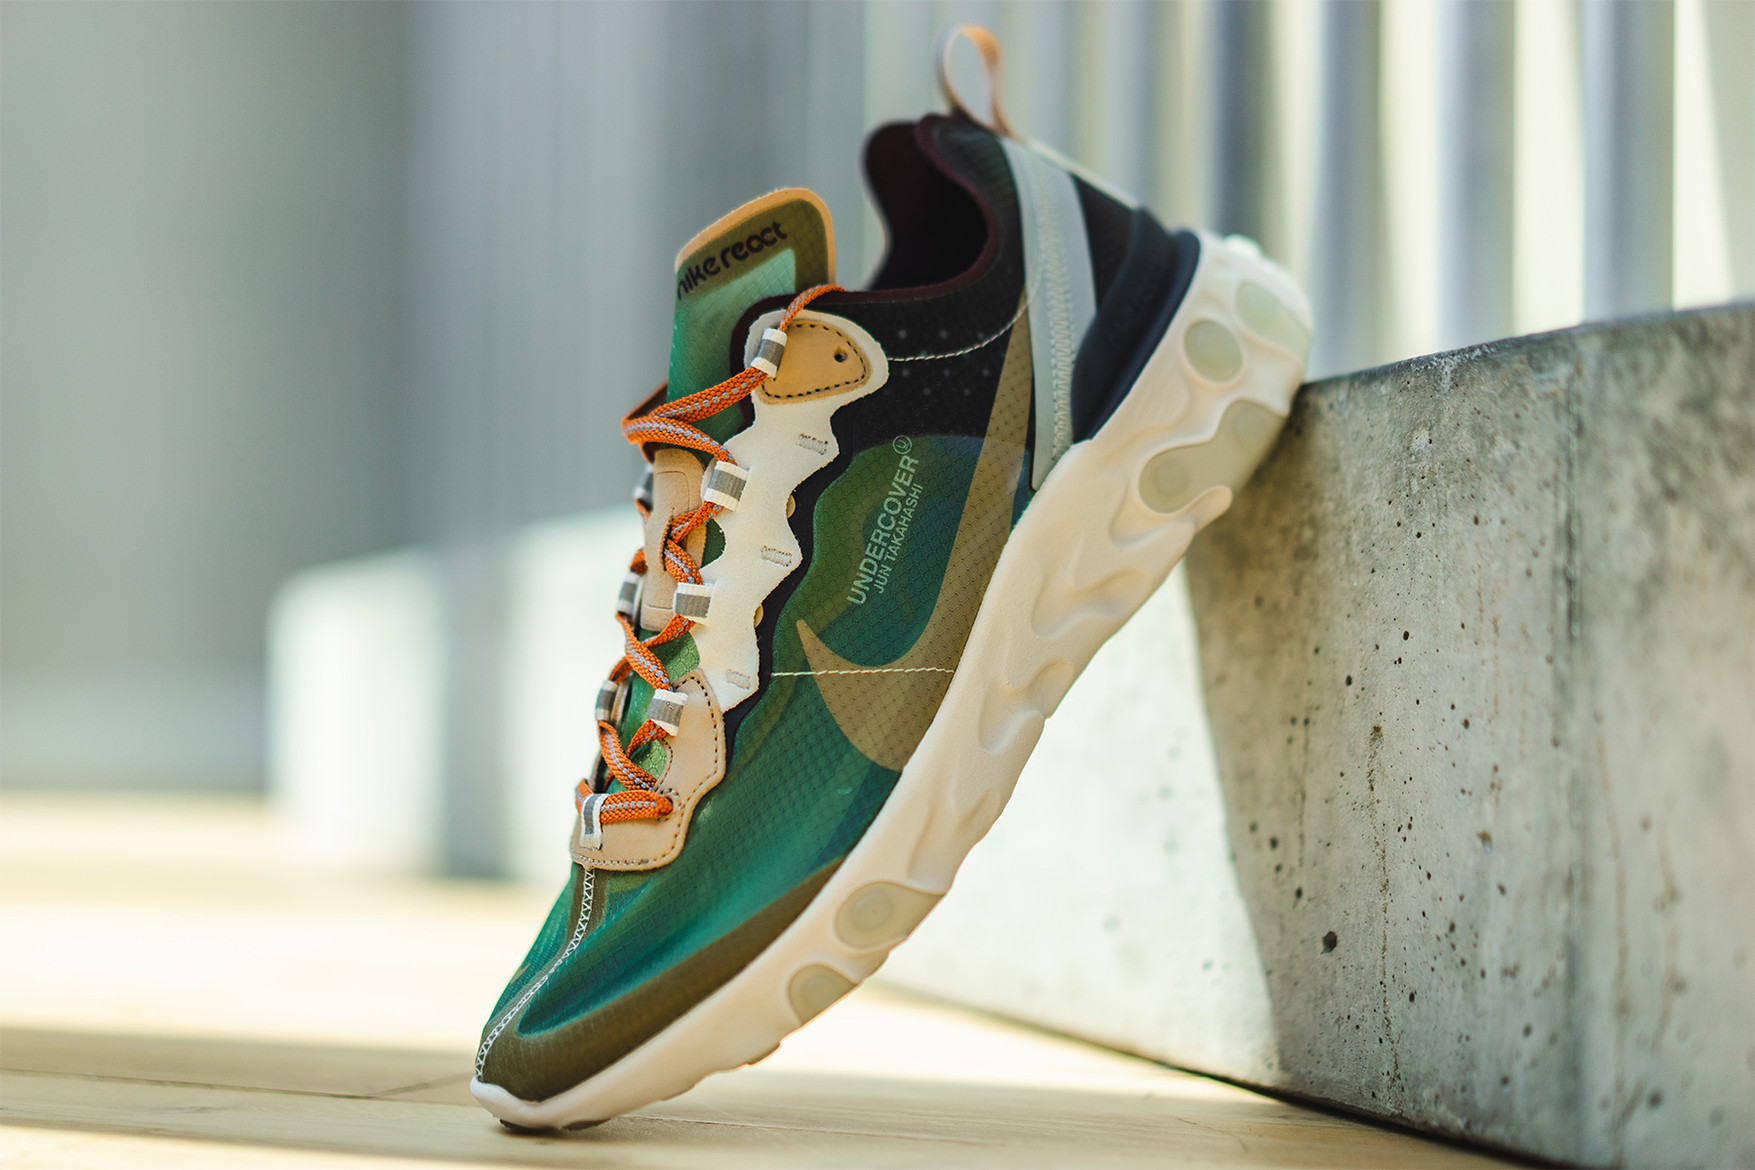 576c8d81c613 ... new arrivals check out the detailing on the undercover x nike react  element 87 fecec 1016b